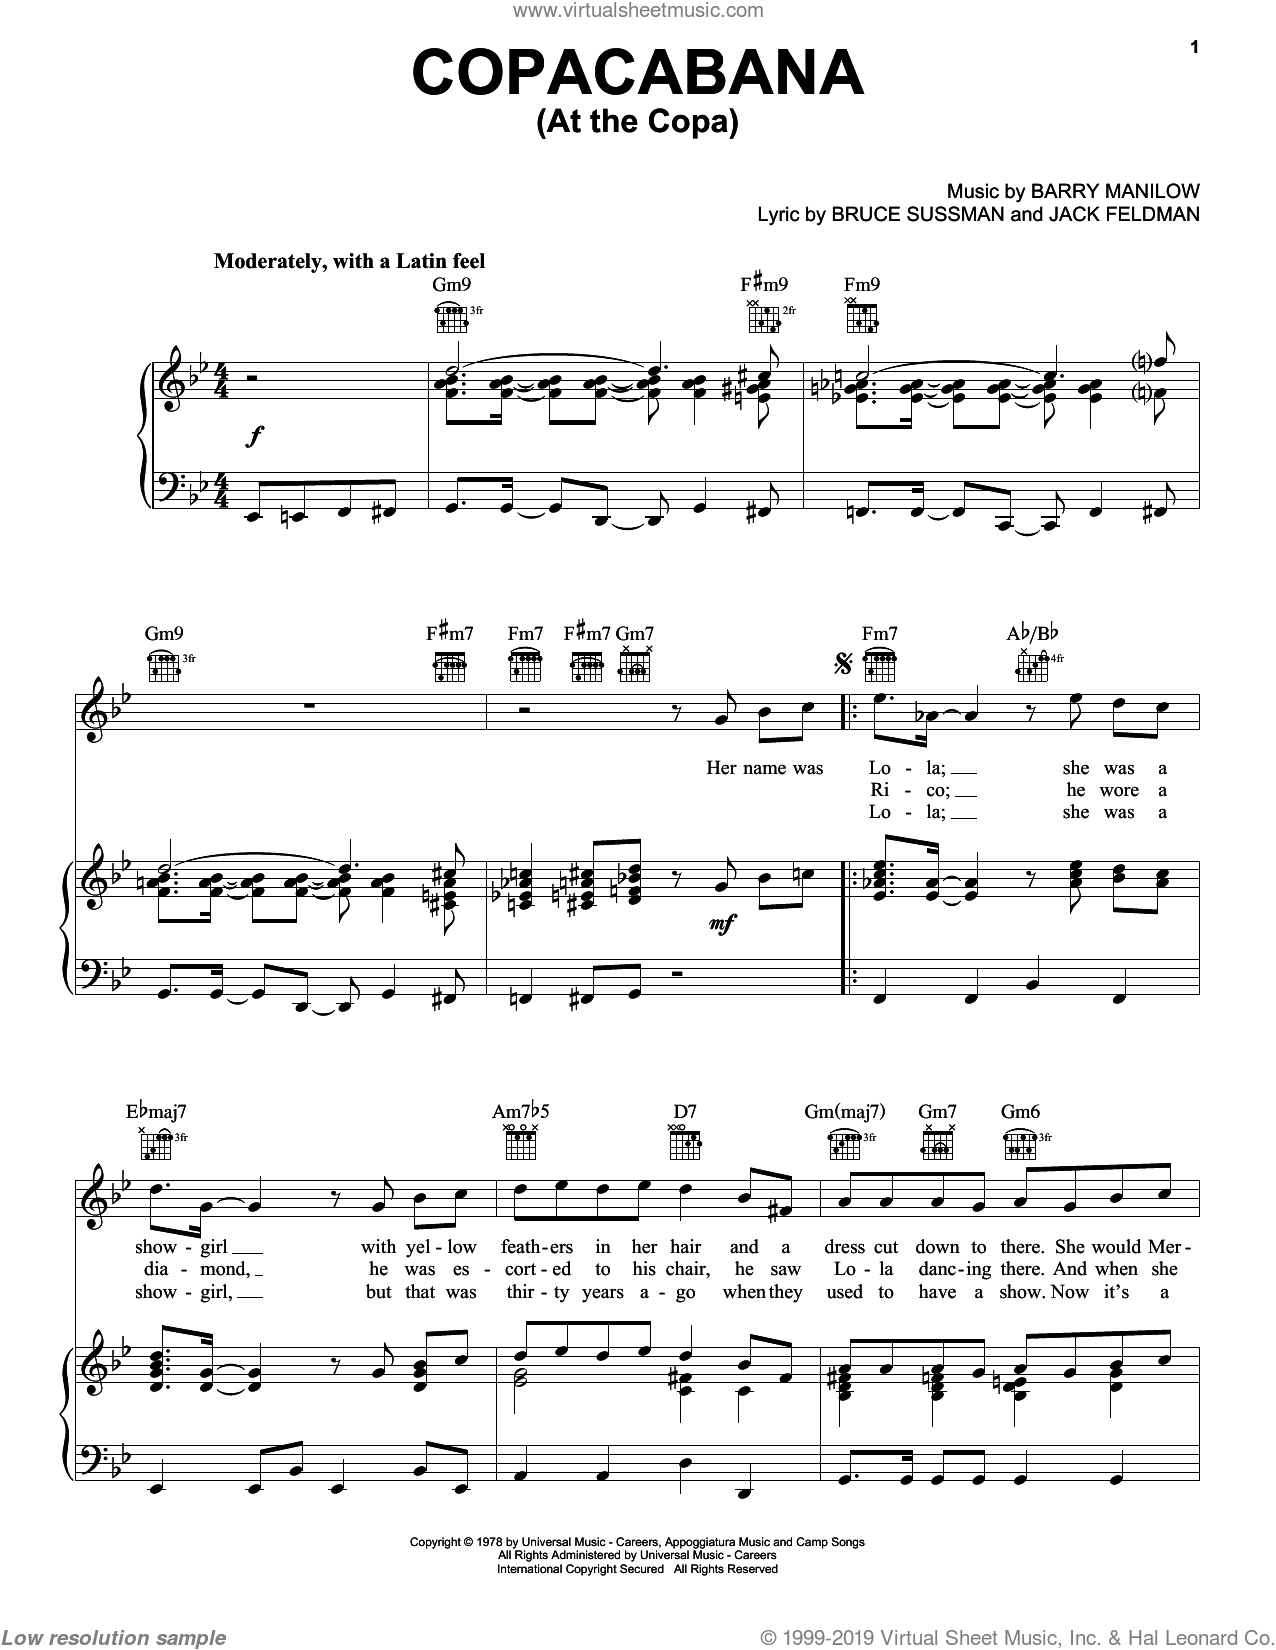 Copacabana (At The Copa) sheet music for voice, piano or guitar by Barry Manilow, Bruce Sussman and Jack Feldman, intermediate skill level